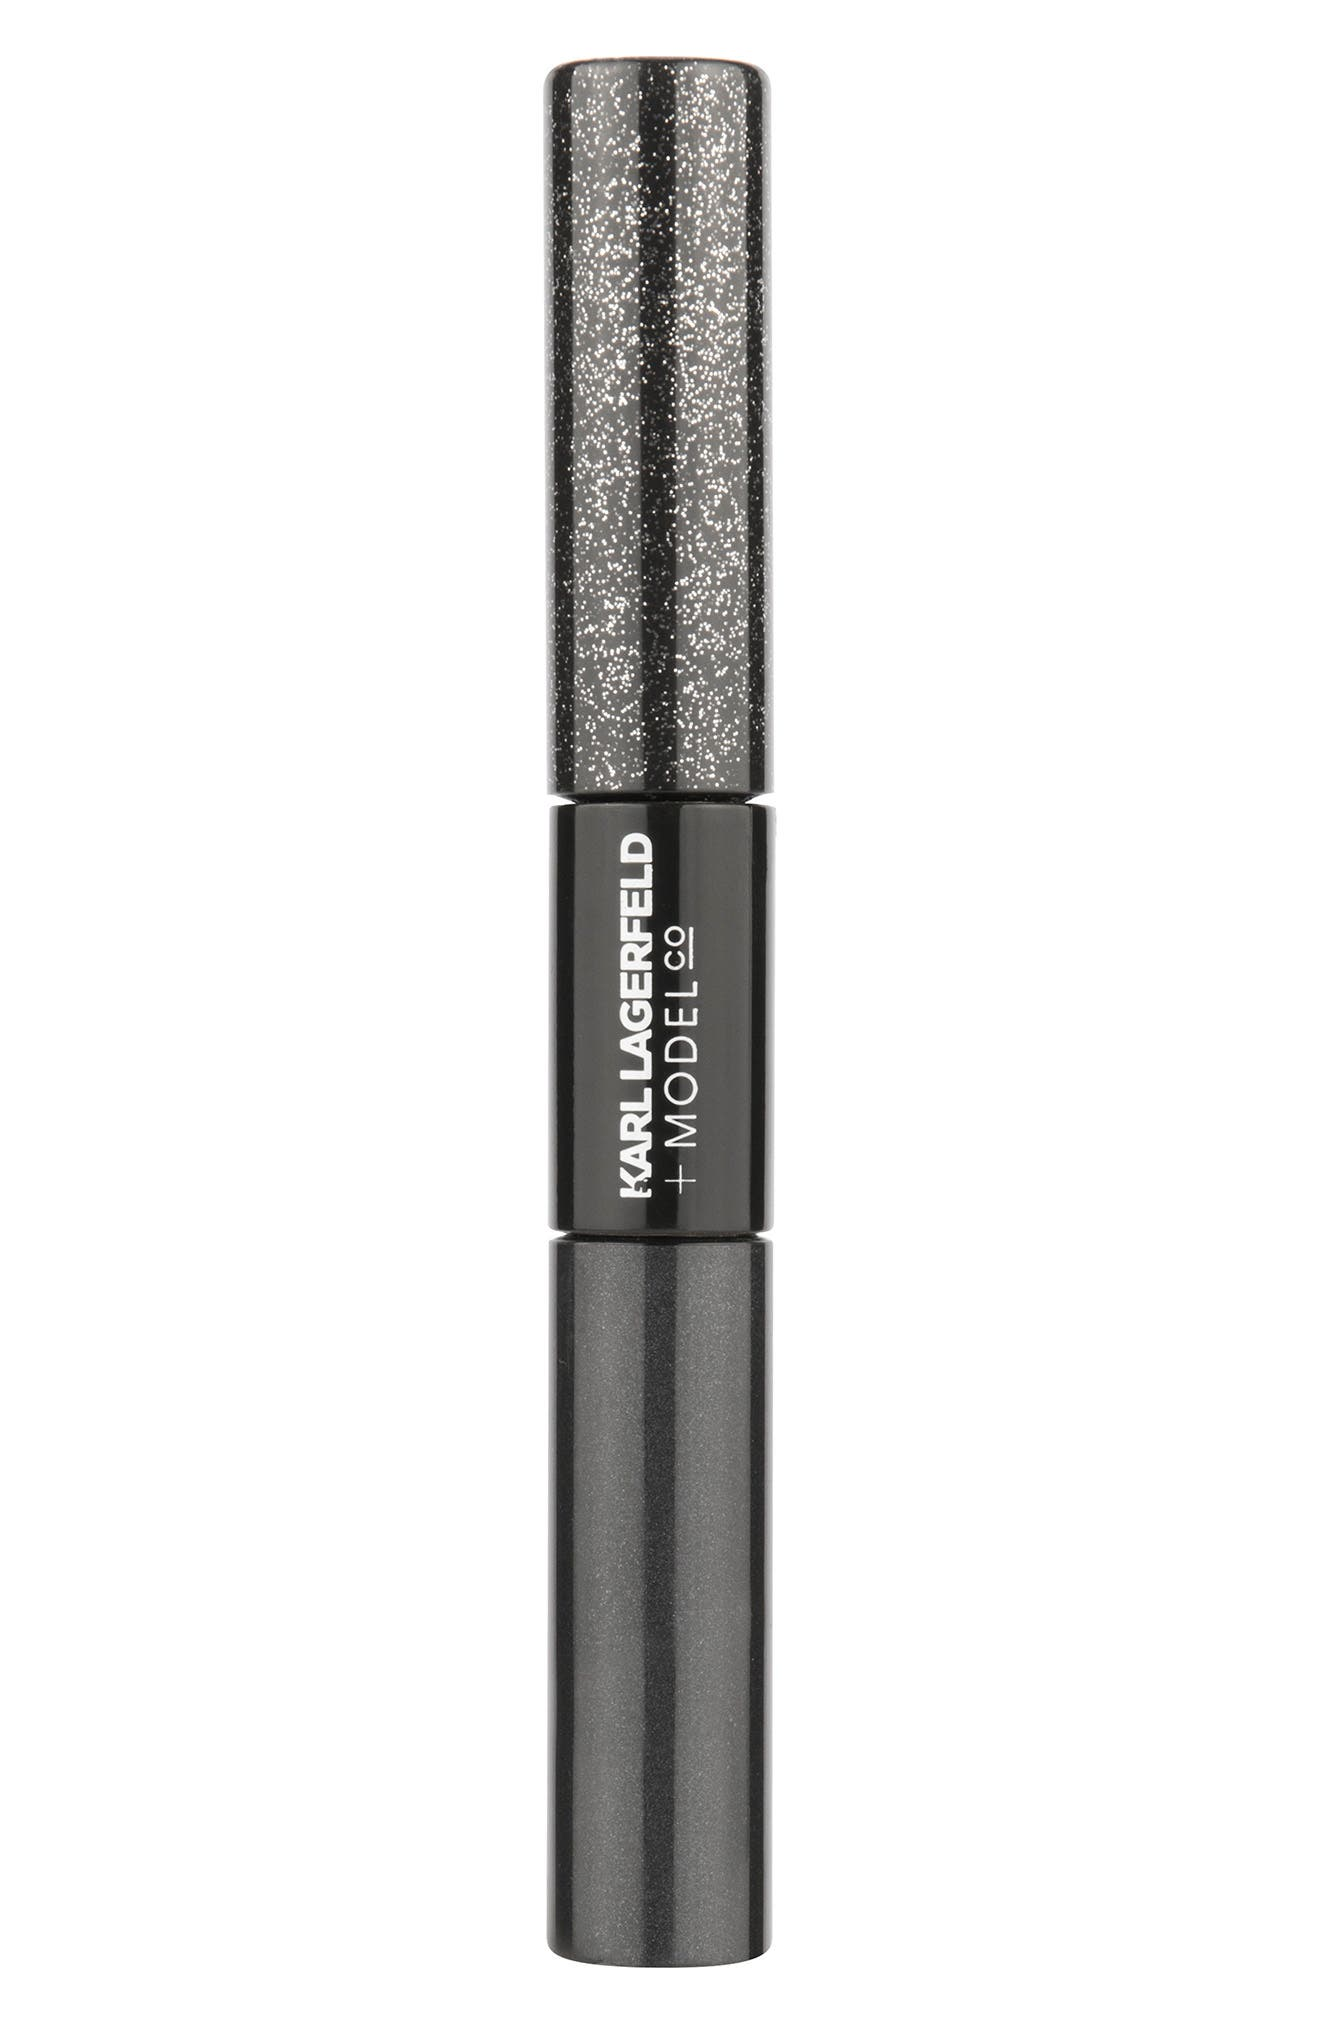 KARL LAGERFELD + MODELCO Kiss Me Karl Glitter Eyeliner Duo,                             Alternate thumbnail 2, color,                             001